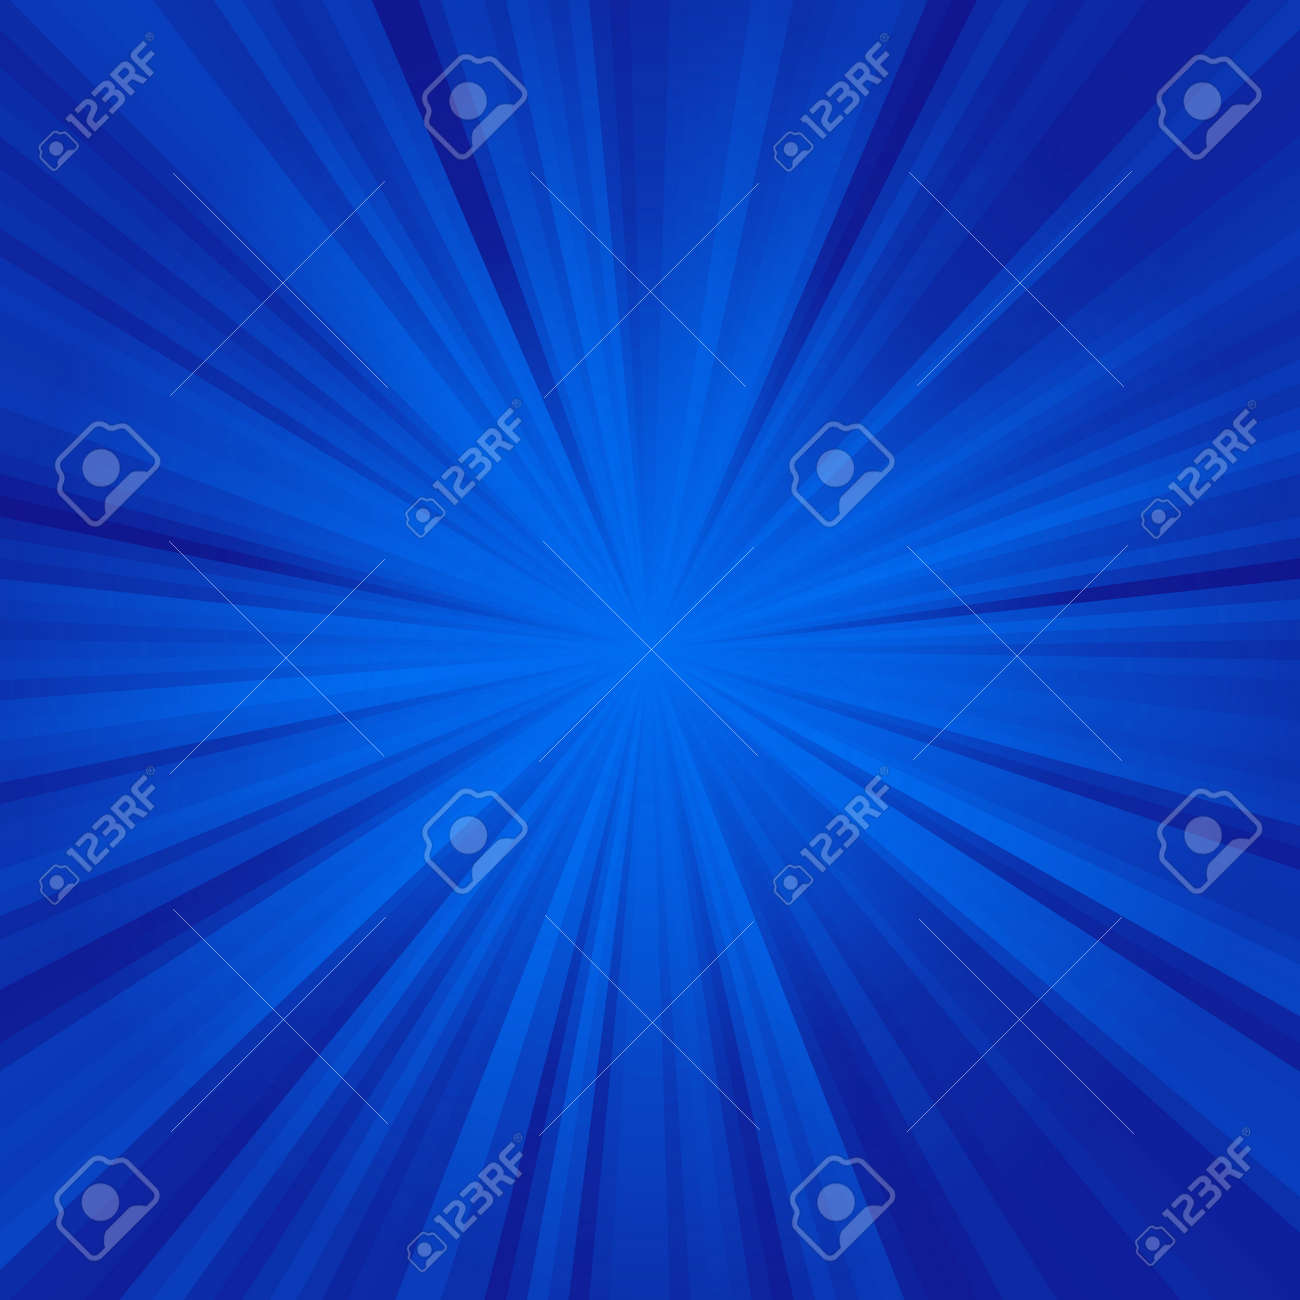 Abstract ray burst background, glow effect, comix - 158106771